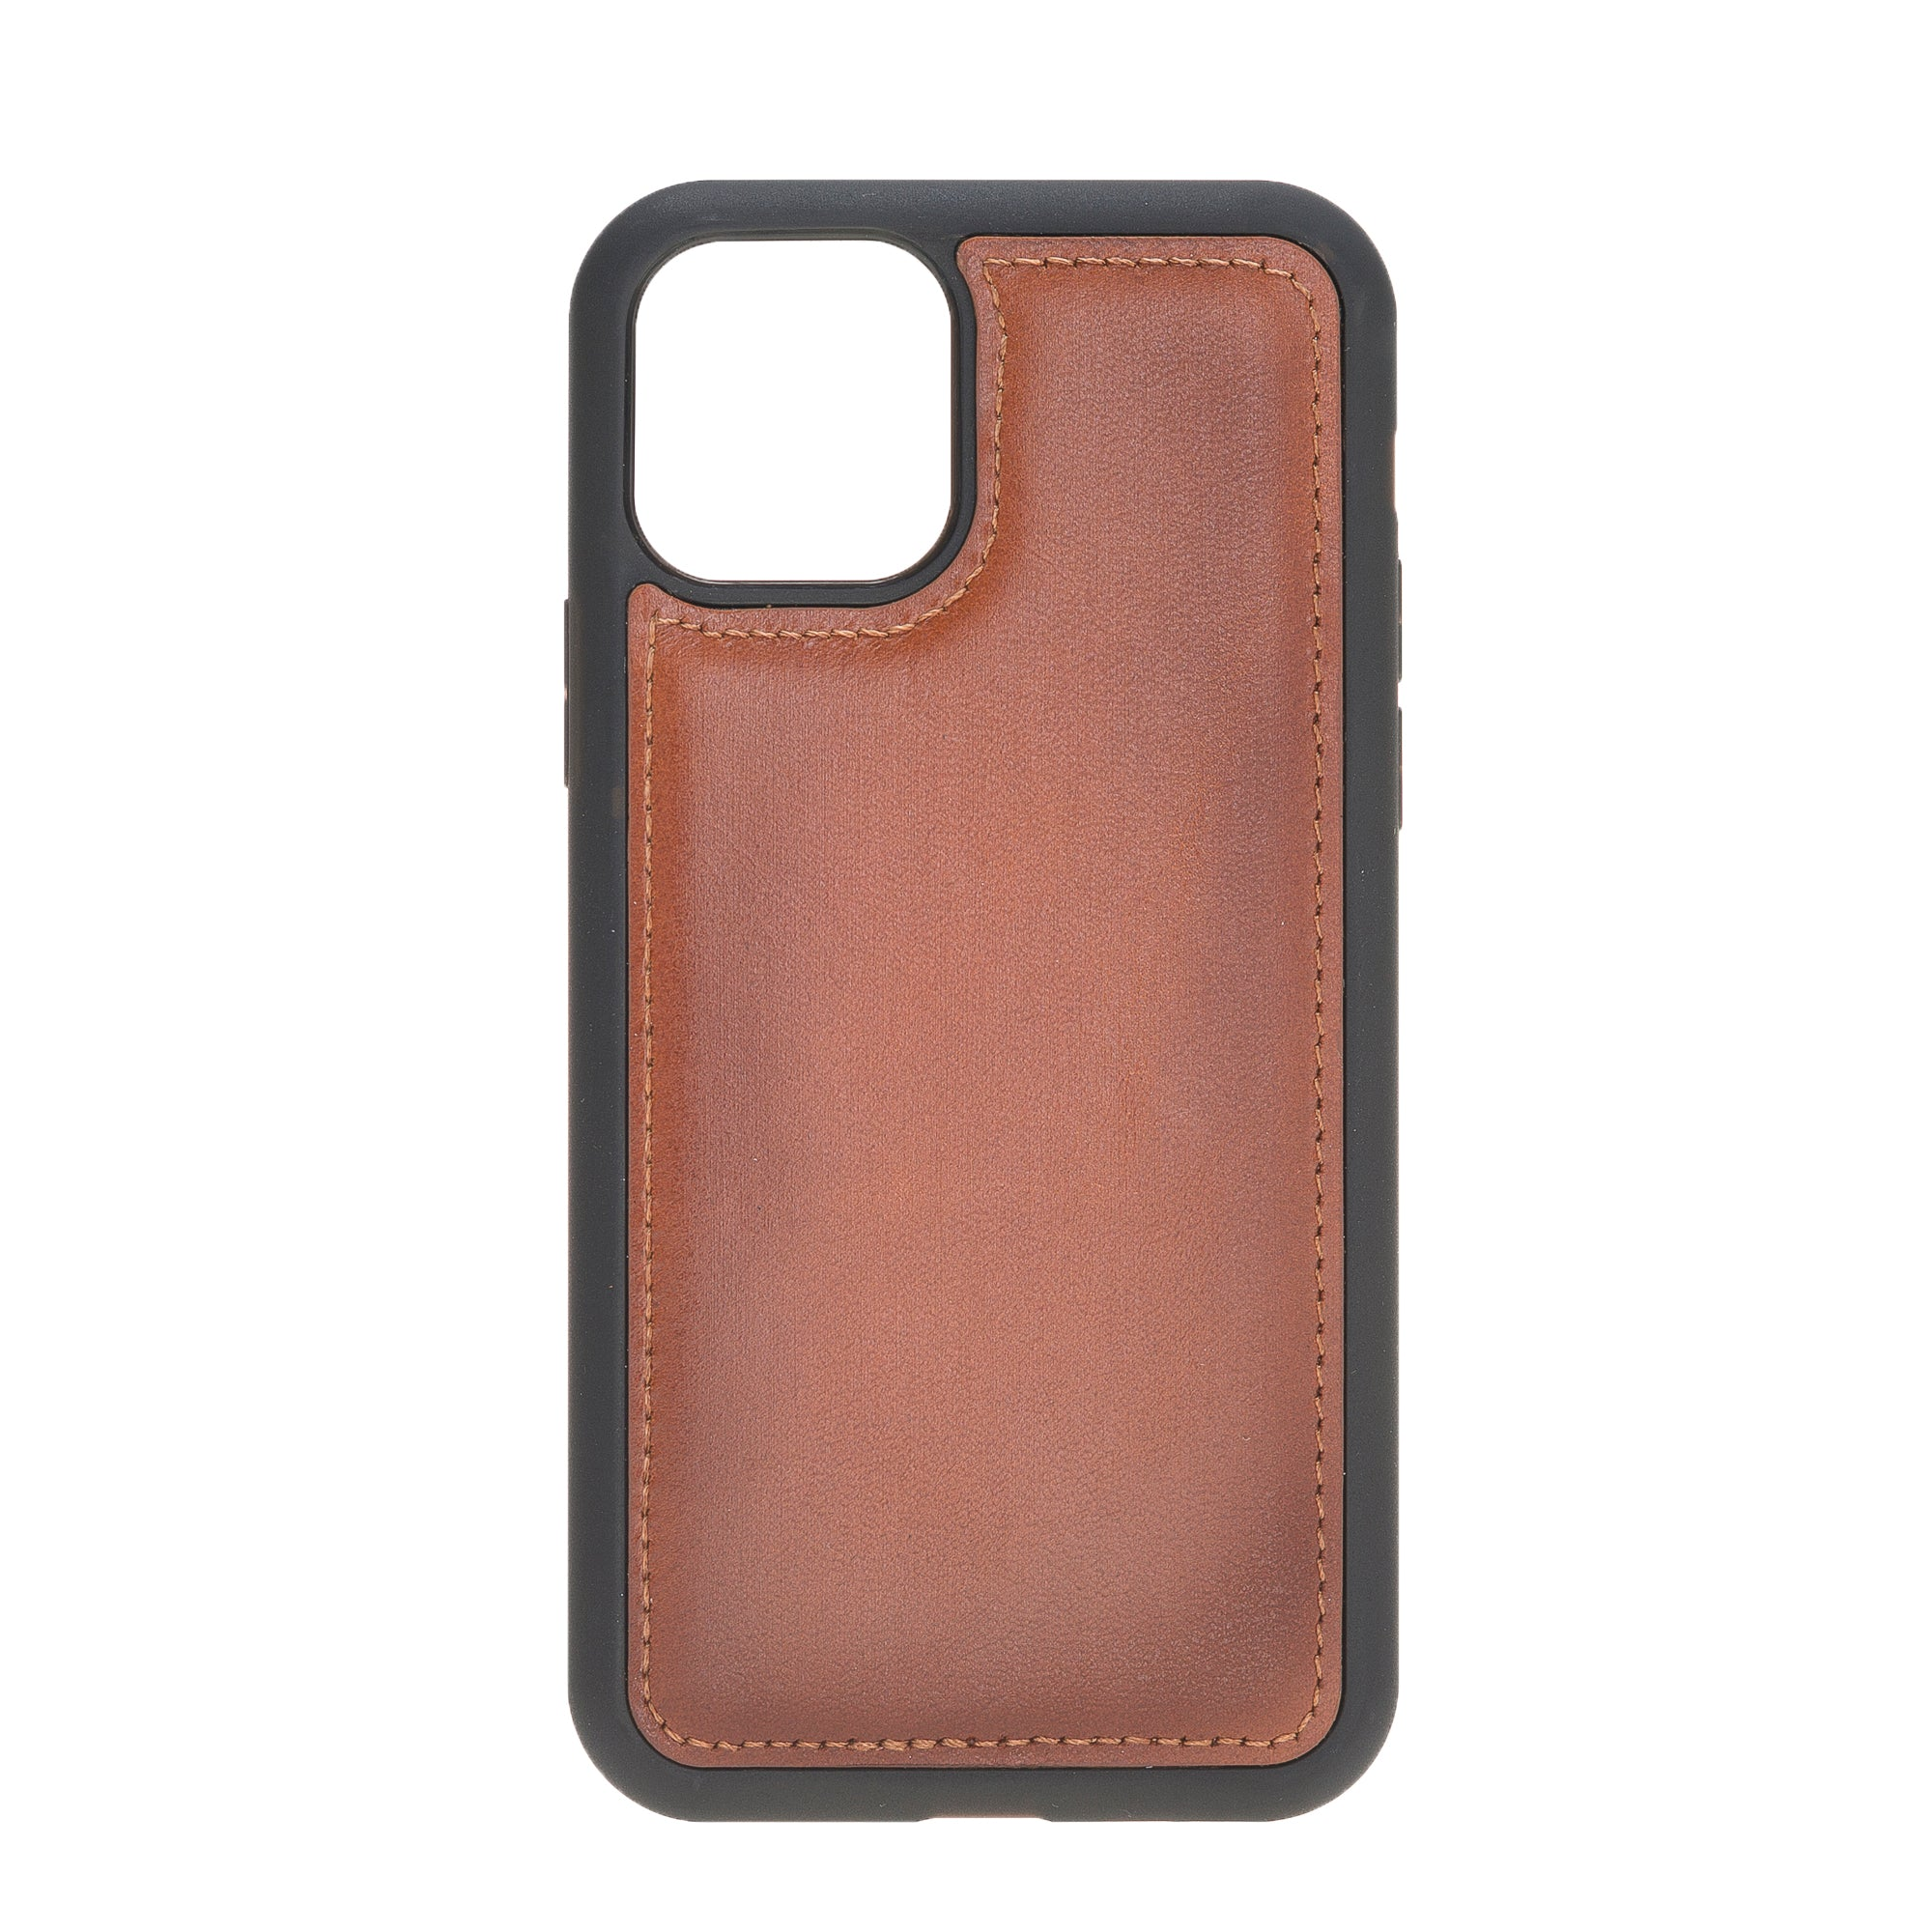 "Brown Burnished Apple iPhone 11 PRO (5.8"") Leather Case"